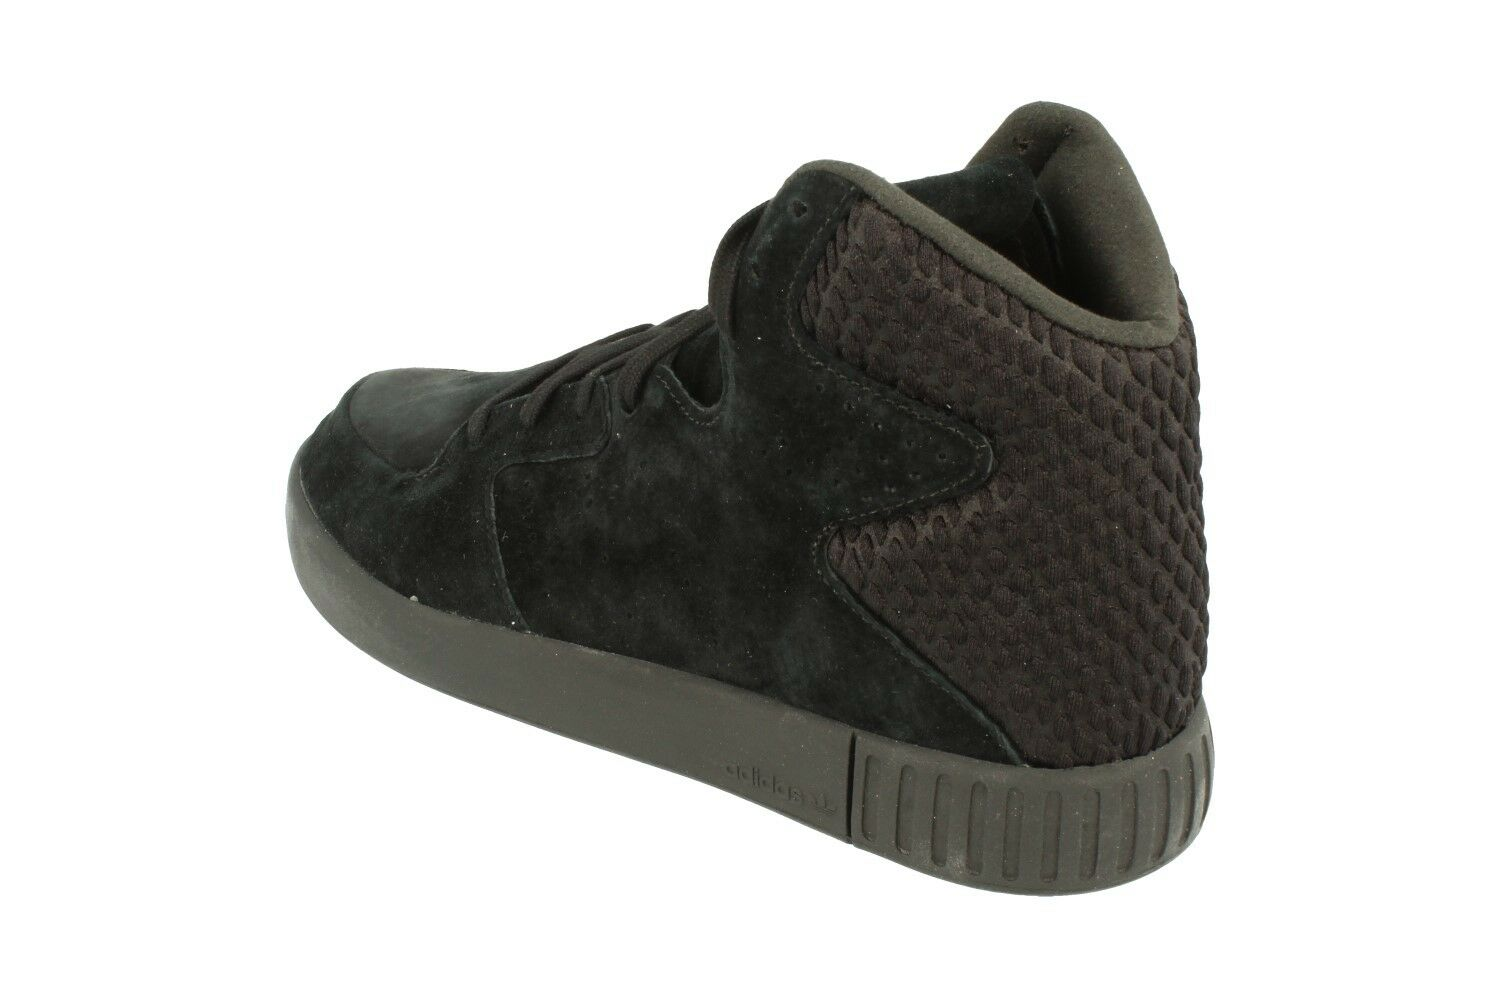 Chaussures ADIDAS NERO/ROSSO Homme NERO/ROSSO ADIDAS  DB2001 ae86ce